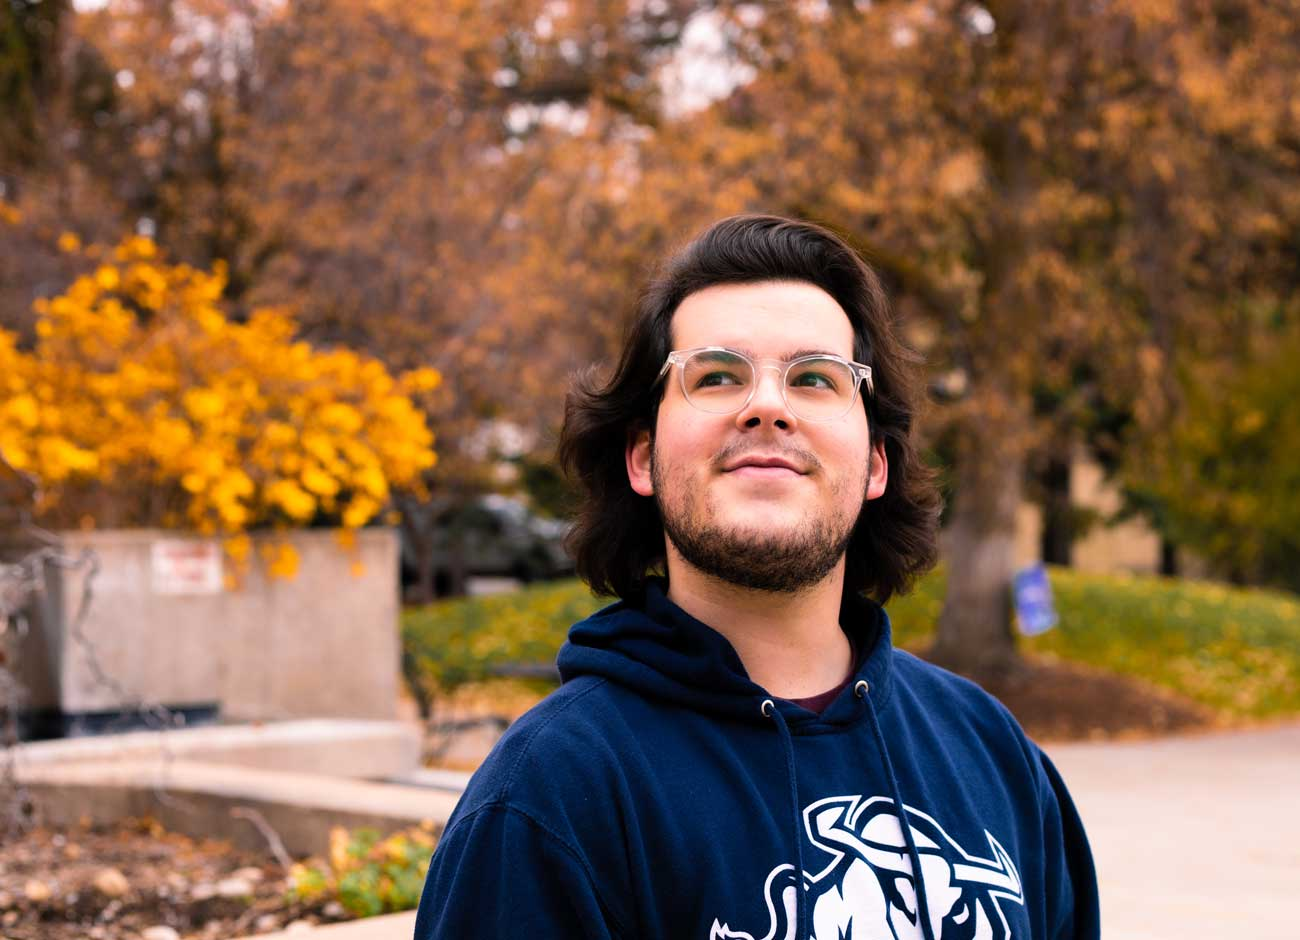 a smiling young man wears an Aggie sweatshirt and looks up at the sky with fall colors behind him